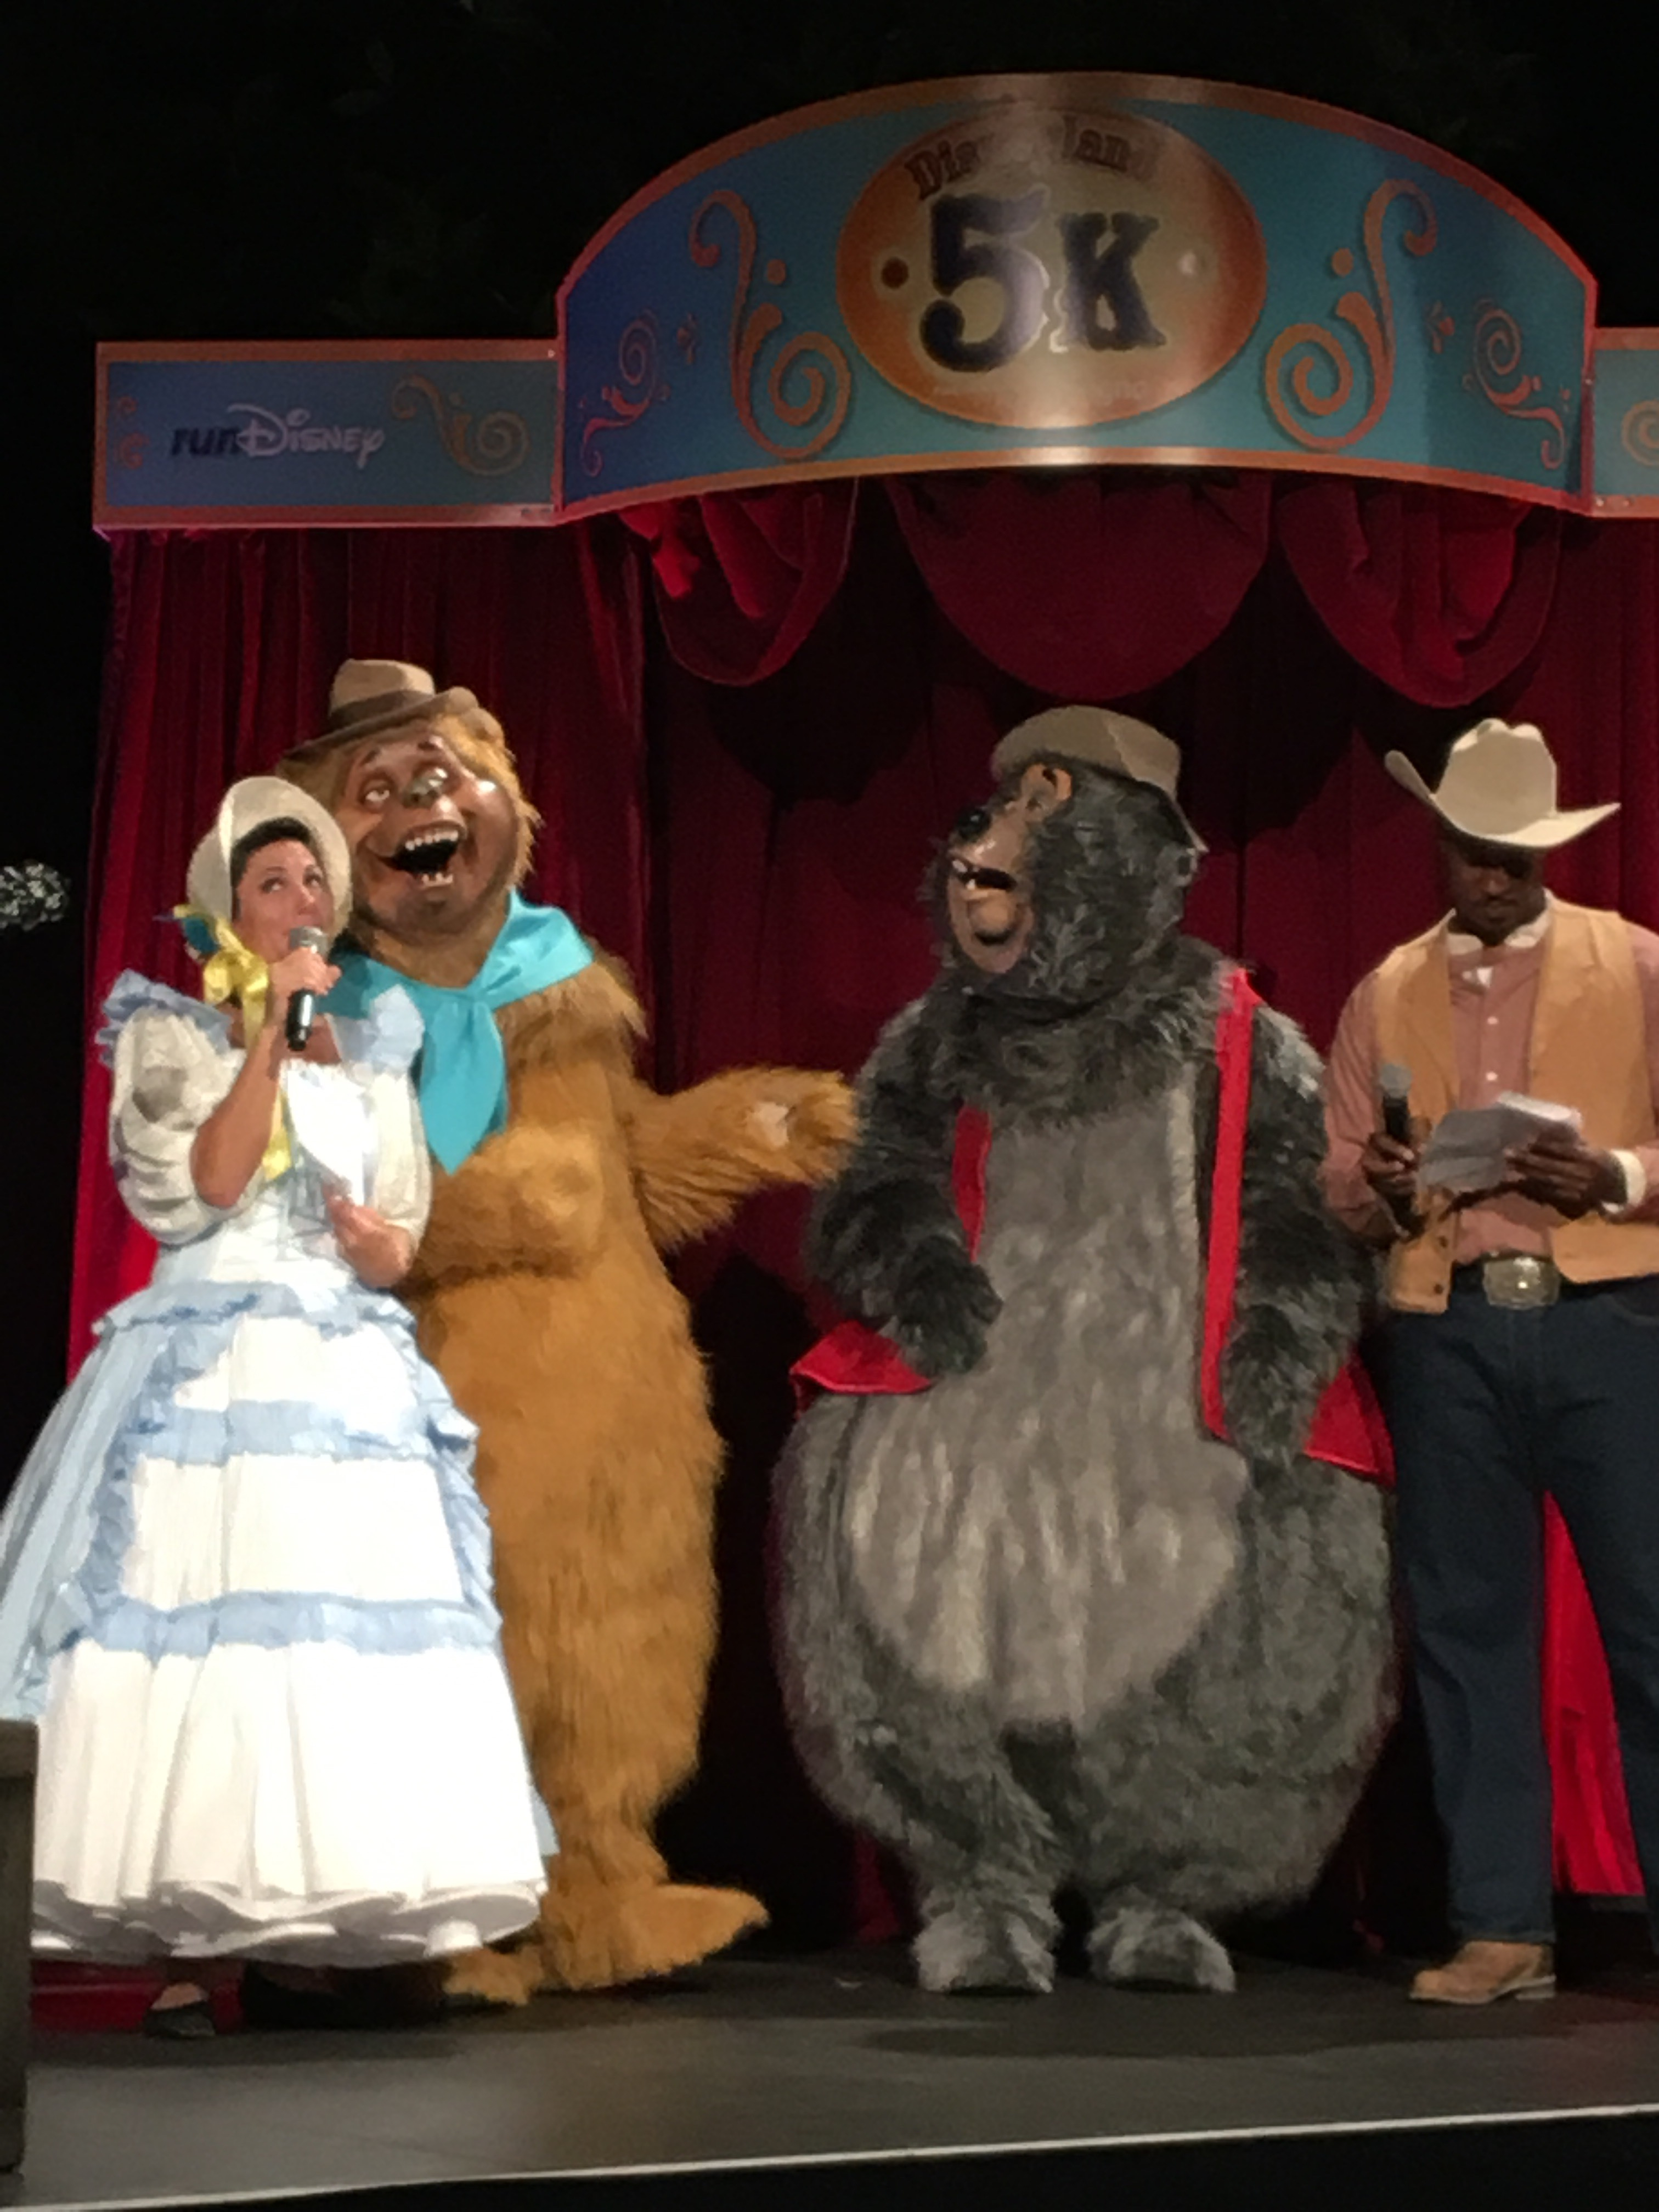 Disneyland Country Bears 5k Race Recaps